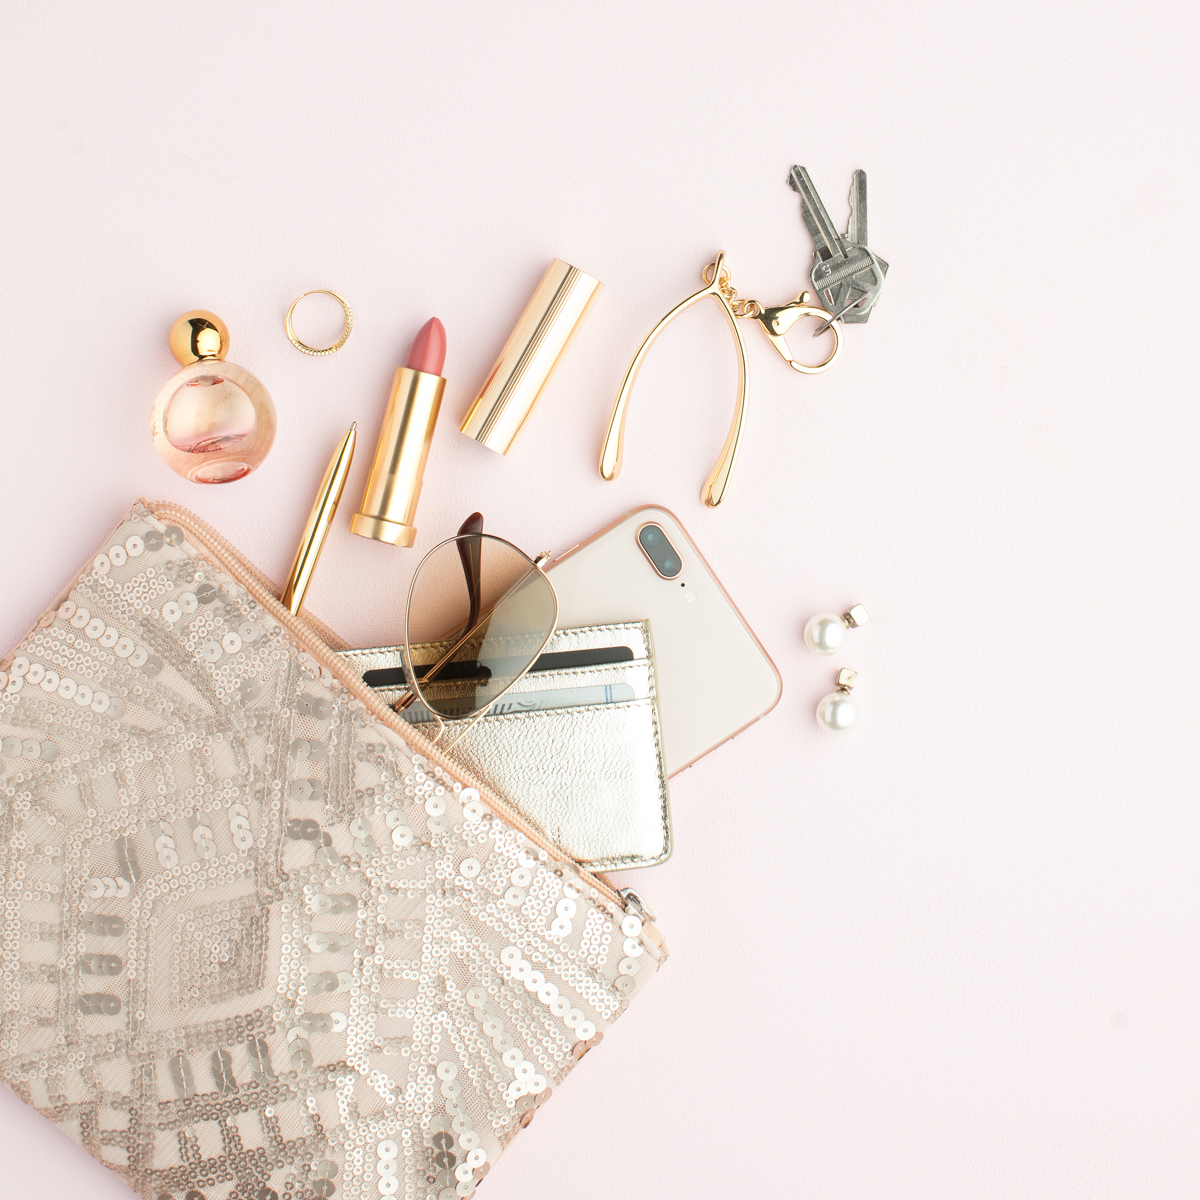 Get date night ready, ladies! We're sharing some out-of-the-box ideas for date night that might not include your sequin clutch (but always the pearls!).